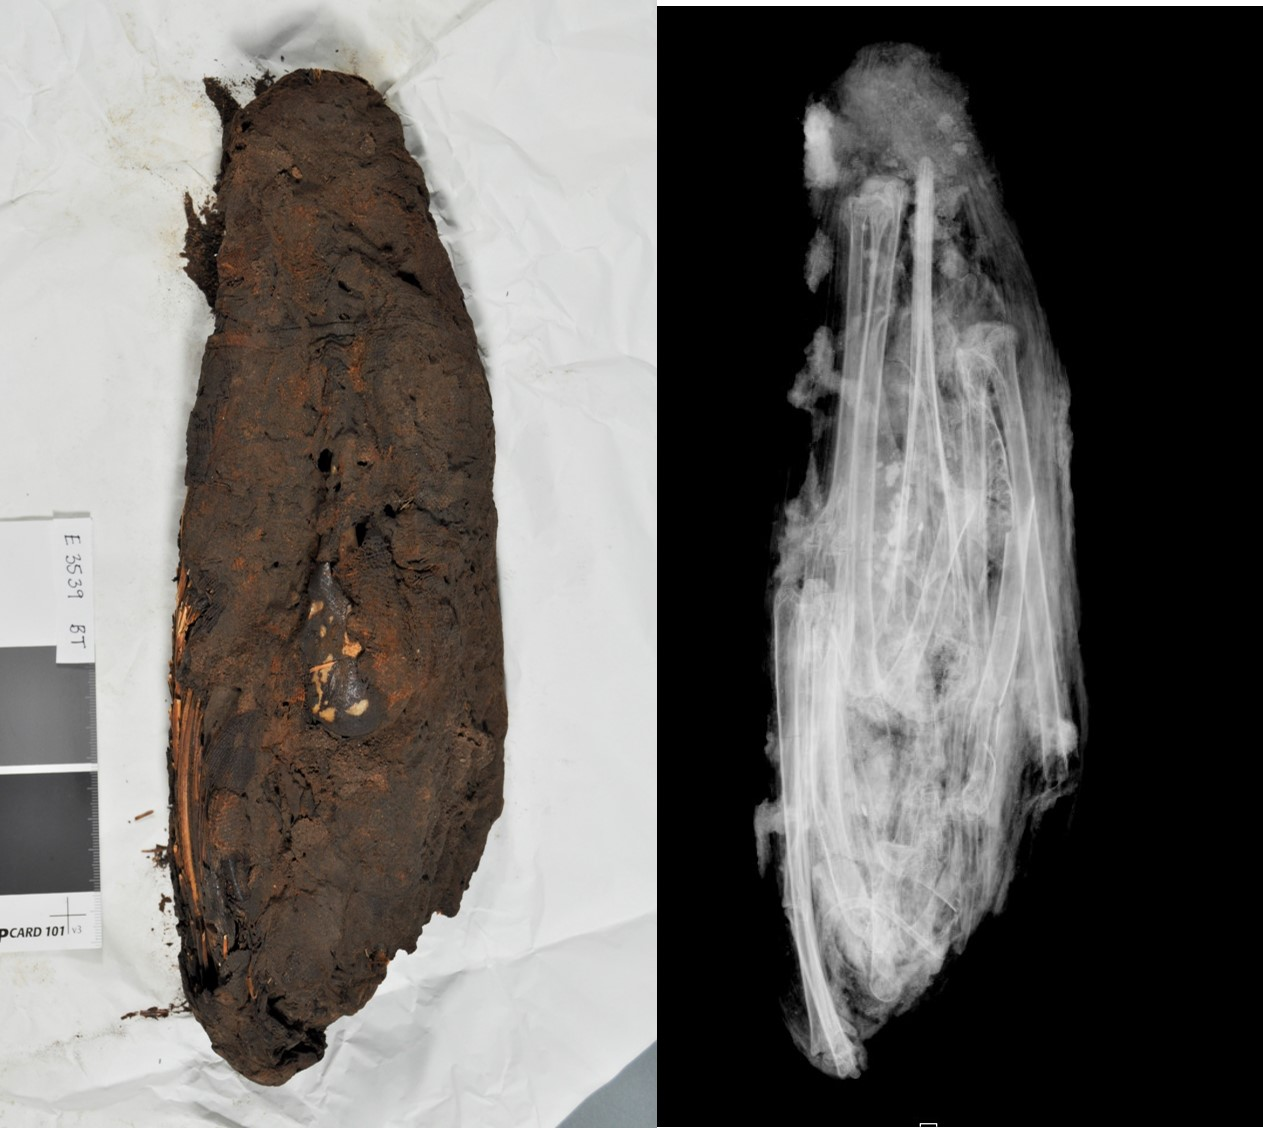 Mummy (left) and radiograph (right) showing an ibis inside.